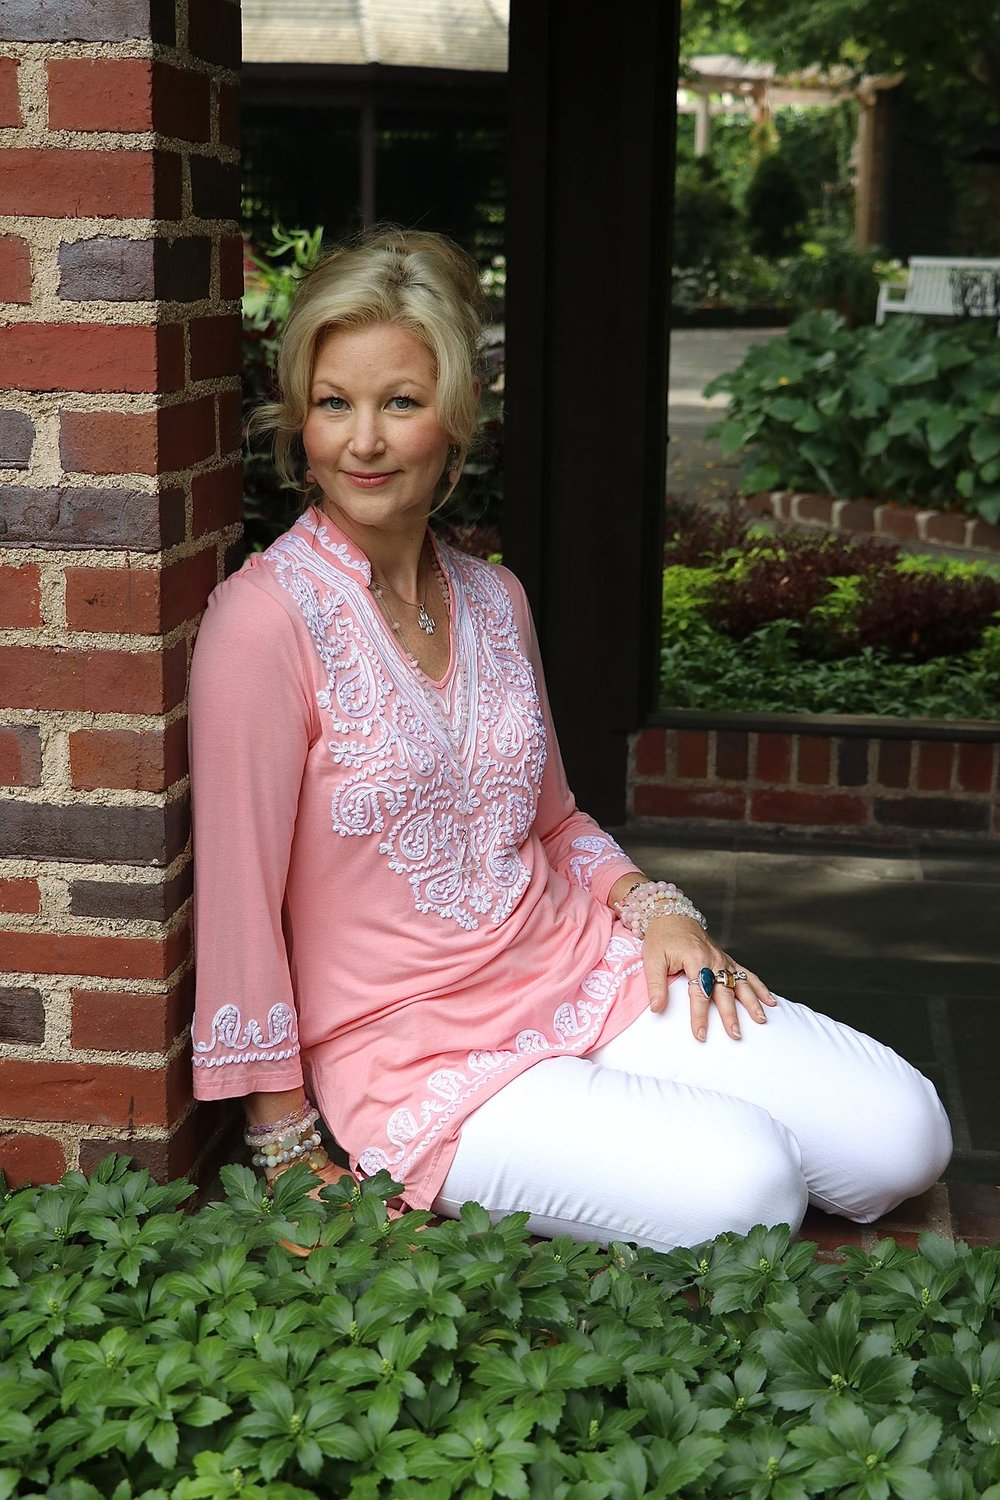 Elise - There are not enough words to describe Elise - she is just an earth angel who has many talents and gifts to share with the world.She is an author of six books (so far) in the mind, body and spirit genre. She is also a gifted energy healer, angel communicator and intuitive. There isn't anything in the psychic and intuitive range that she is unable to do.